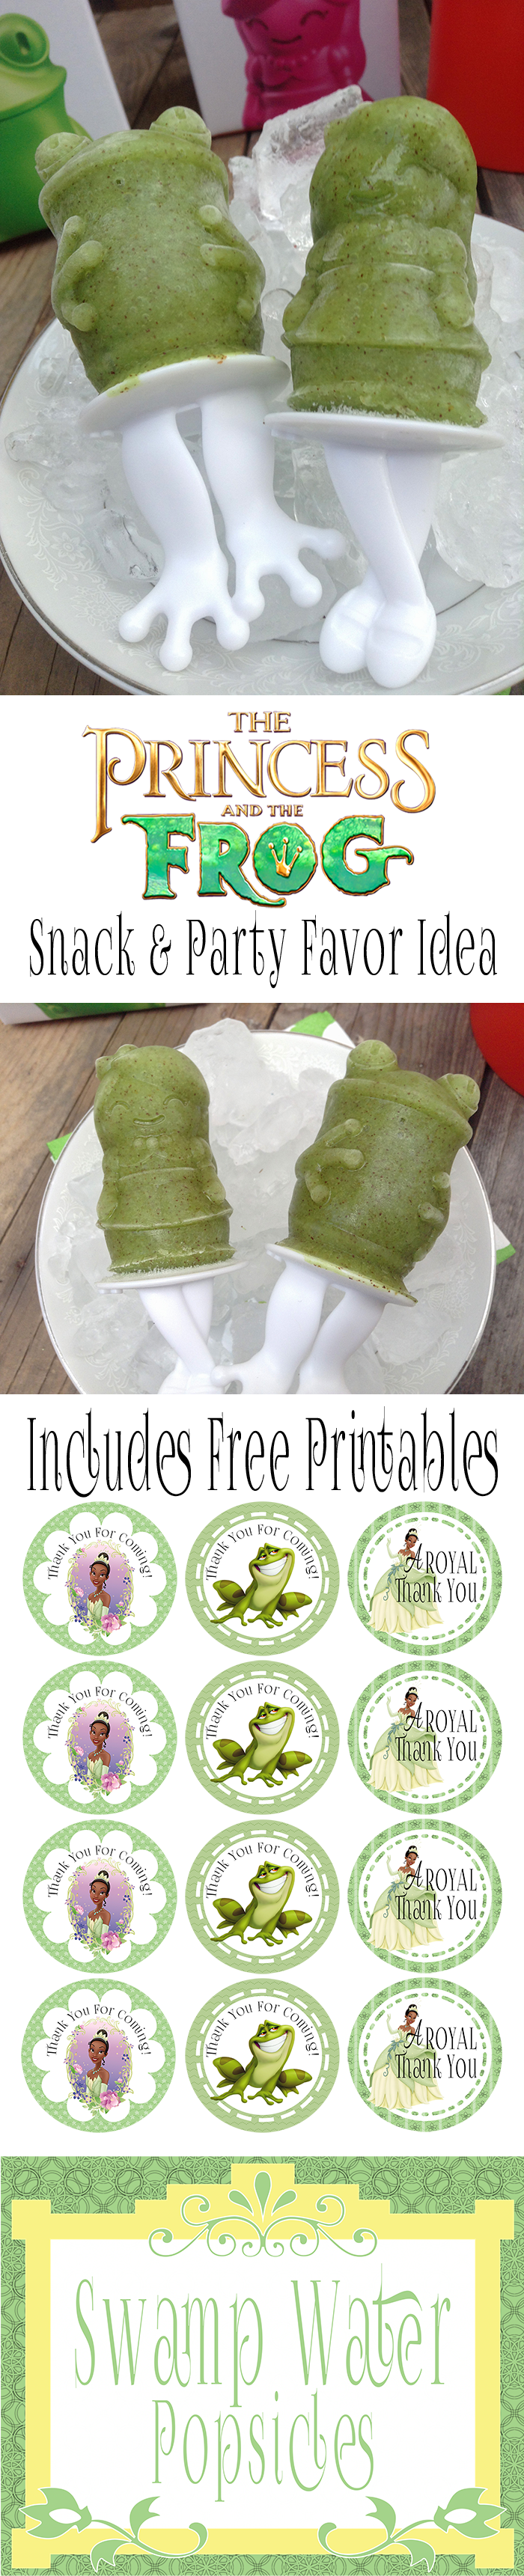 Princess And The Frog Birthday Party Snack And Party Favor Idea | Includes Free Printables